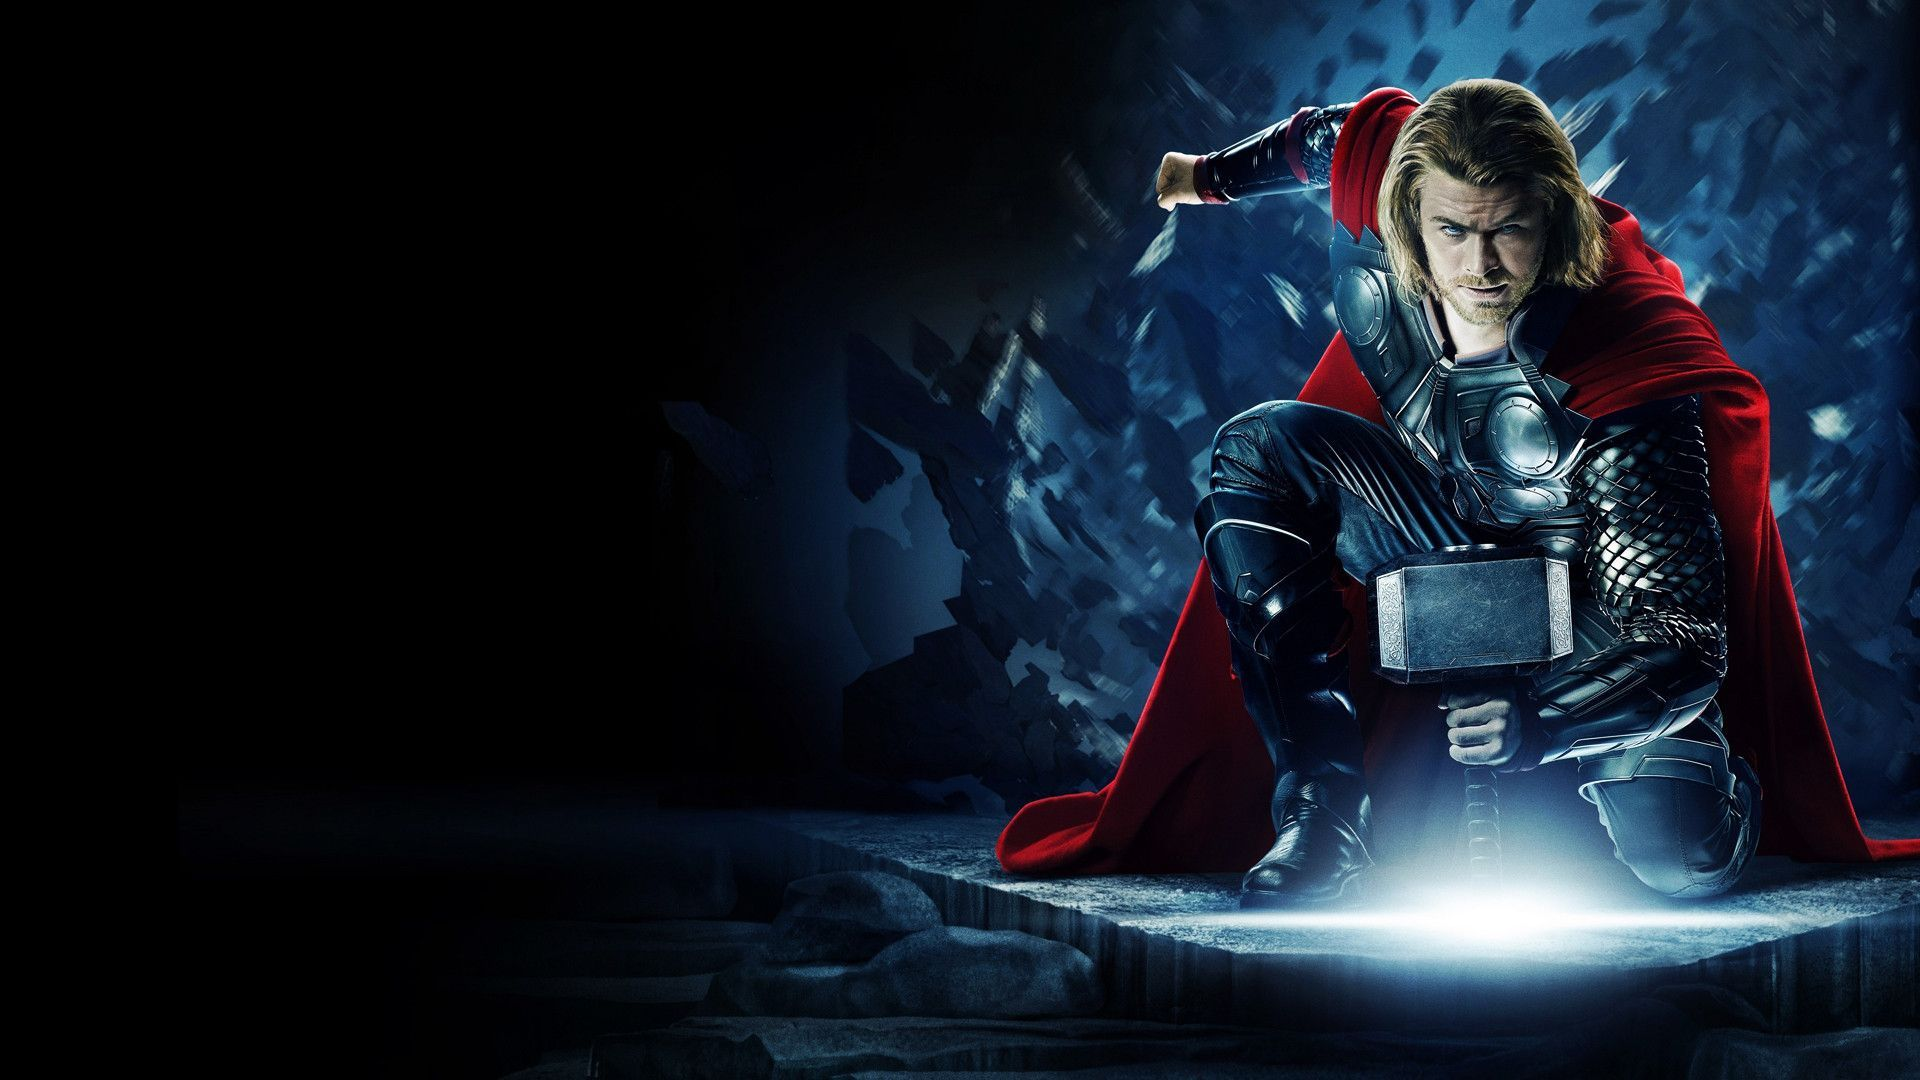 Thor Wallpaper Download